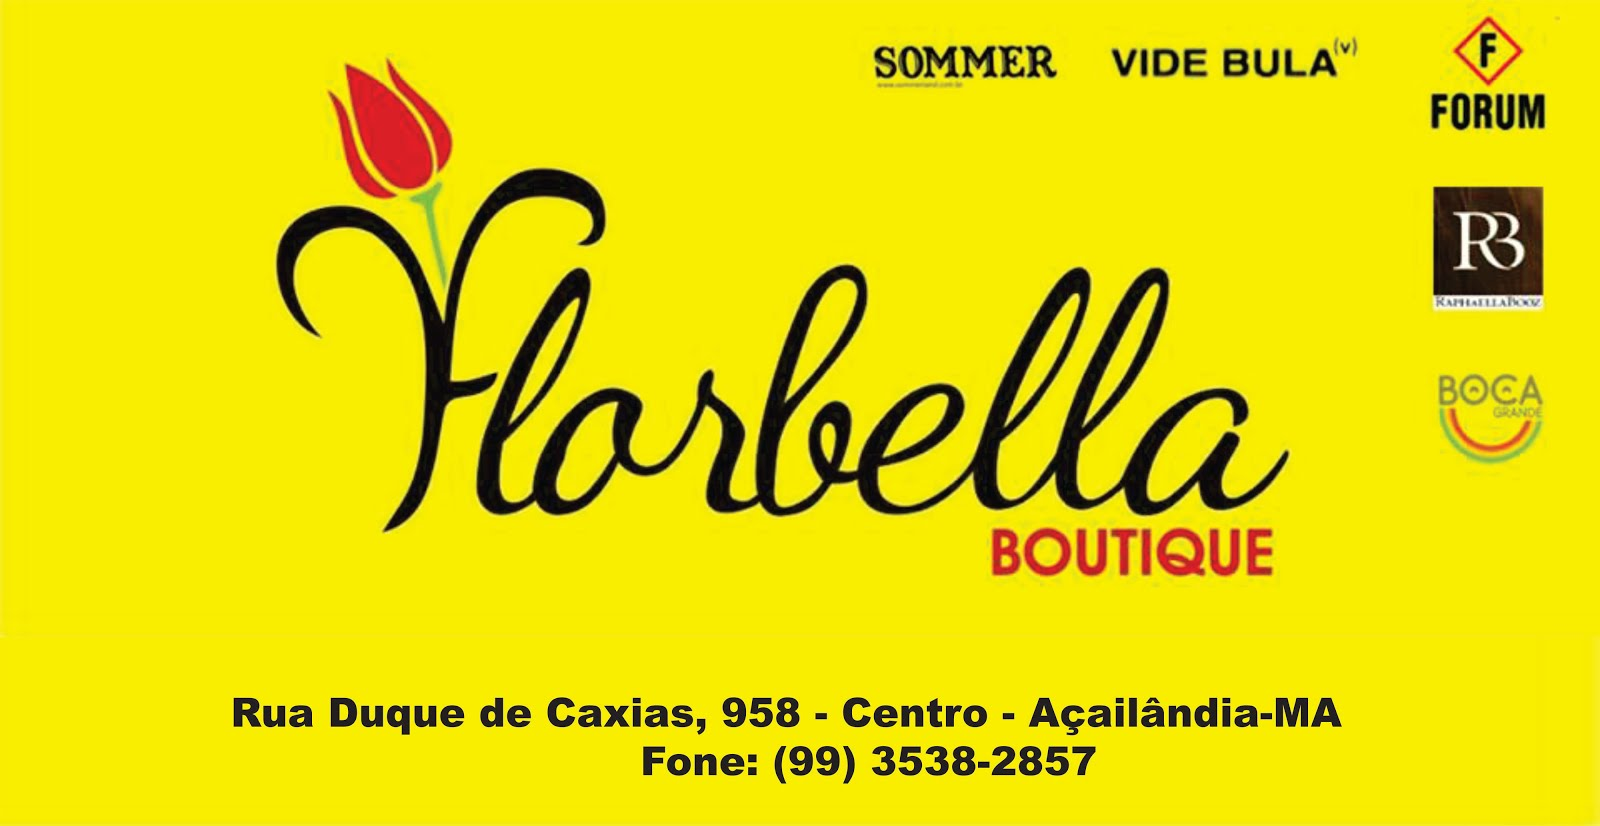 FlorBella Boutique